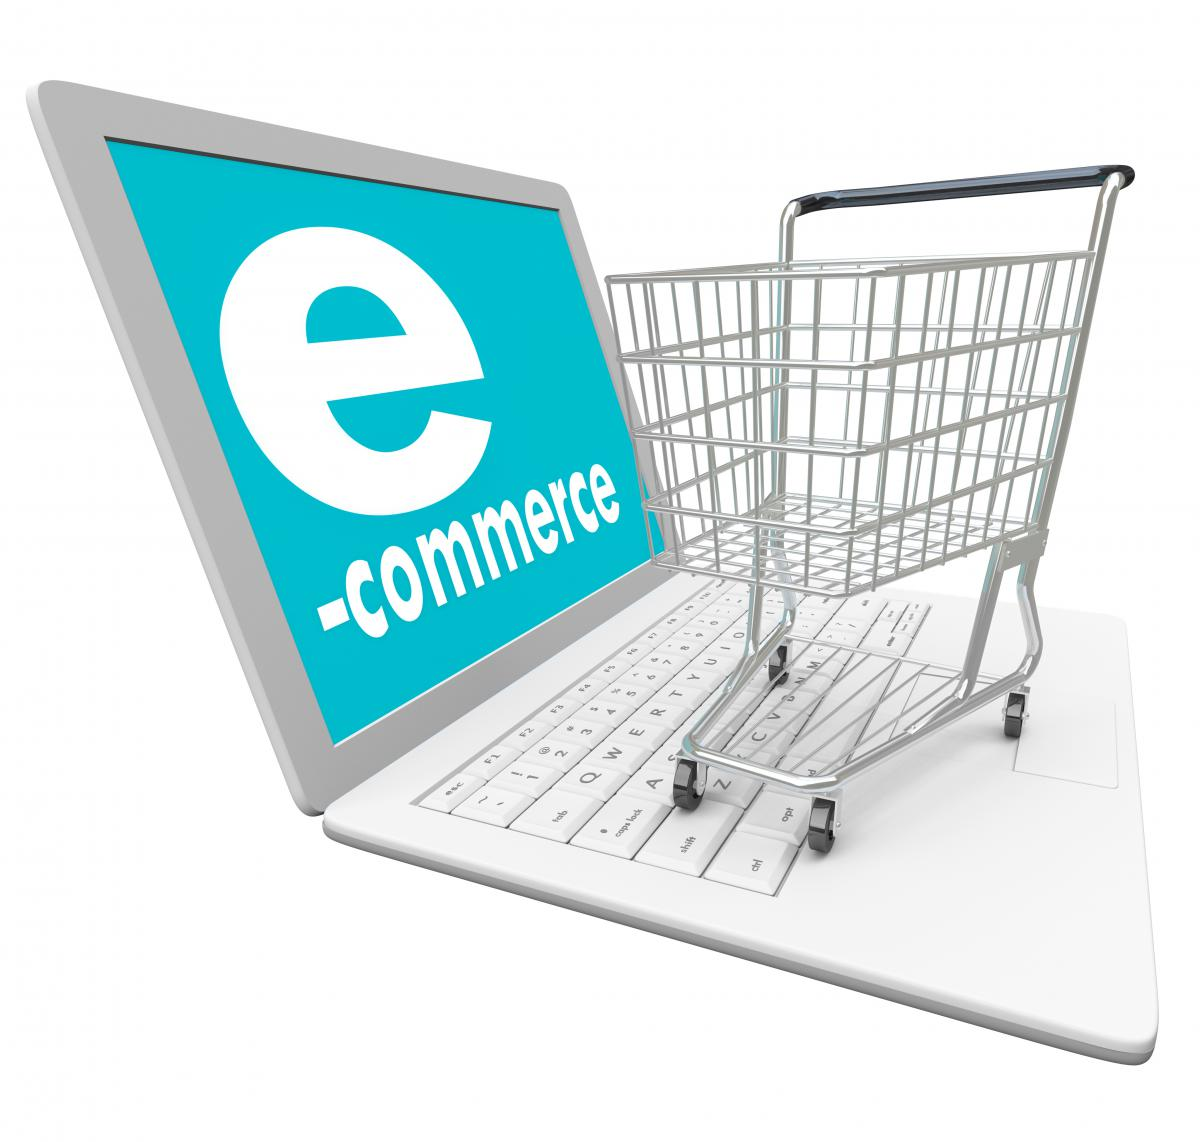 ecommerce eisn vous accompagne